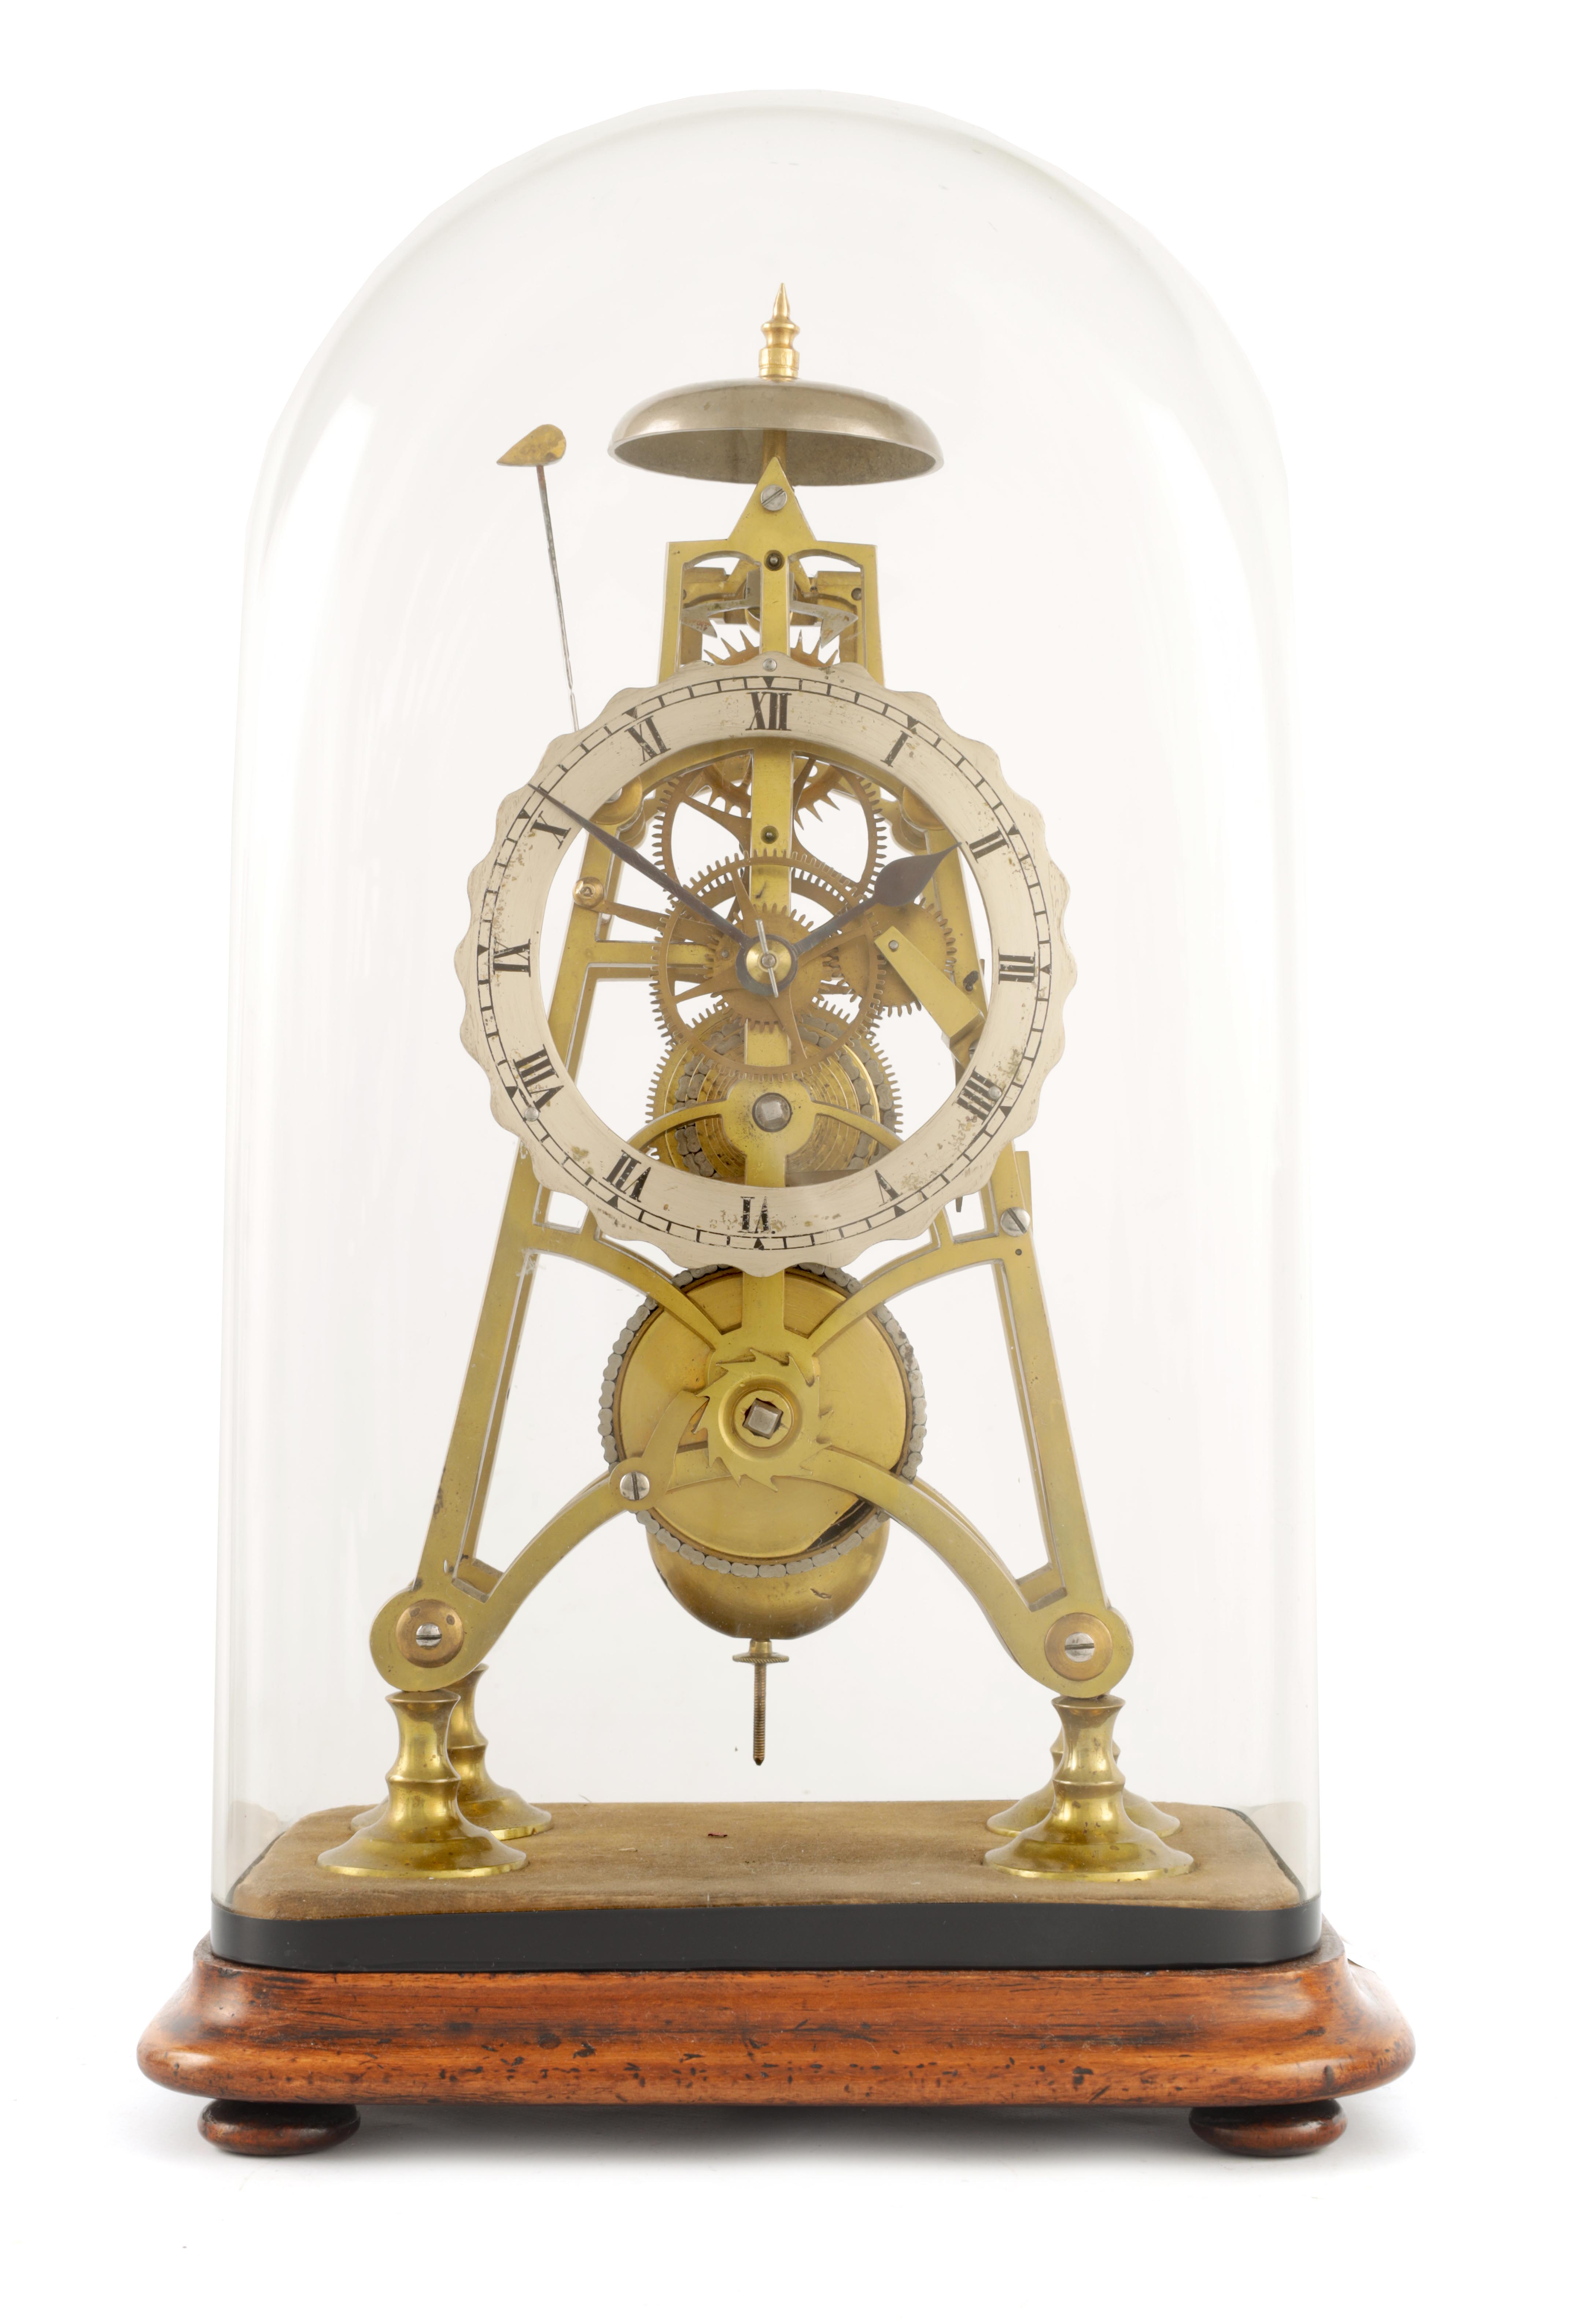 A 19TH CENTURY 8-DAY FUSEE TIMEPIECE SKELETON CLOCK with passing hour bell strike, tapering plates